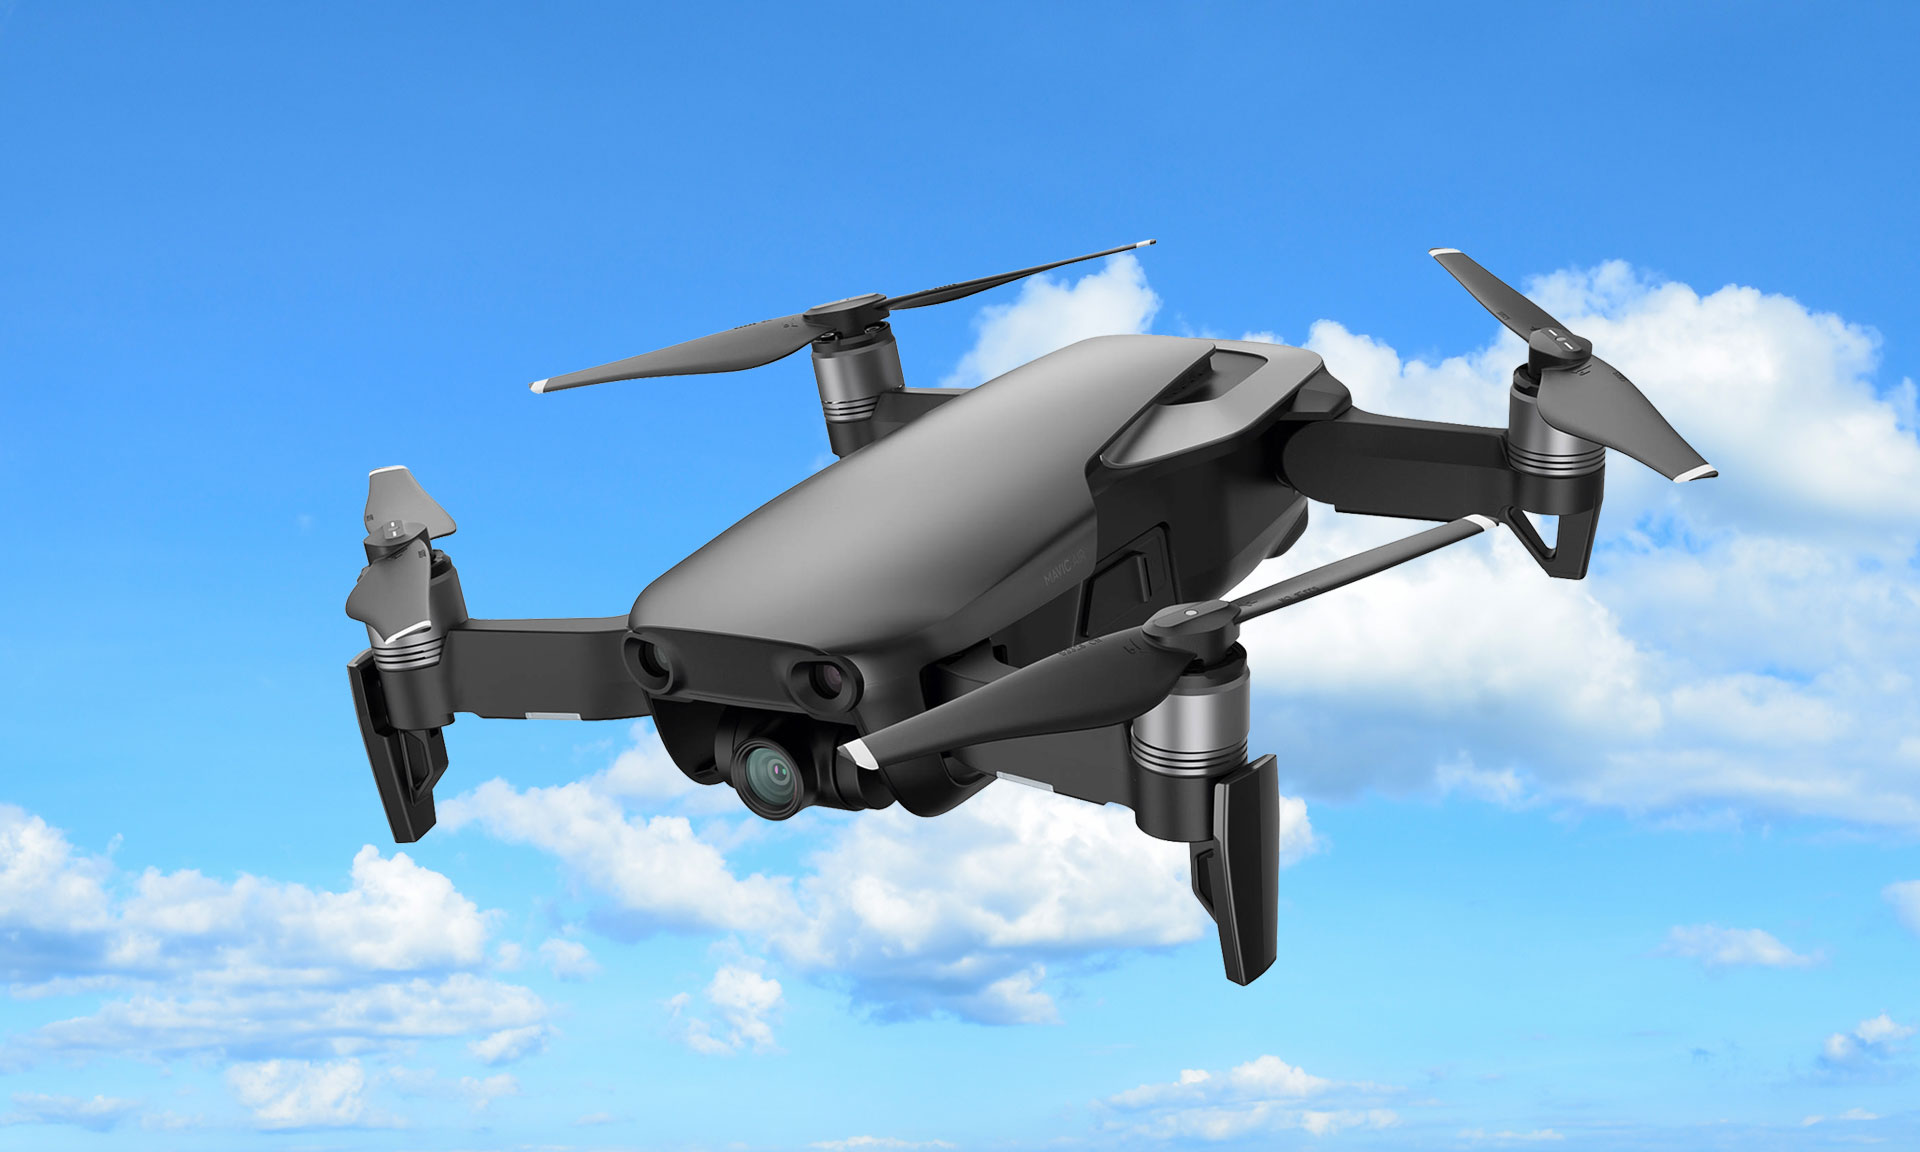 e690d396655 Reviewed: is the DJI Mavic Air the best drone for 2018? – Which? News